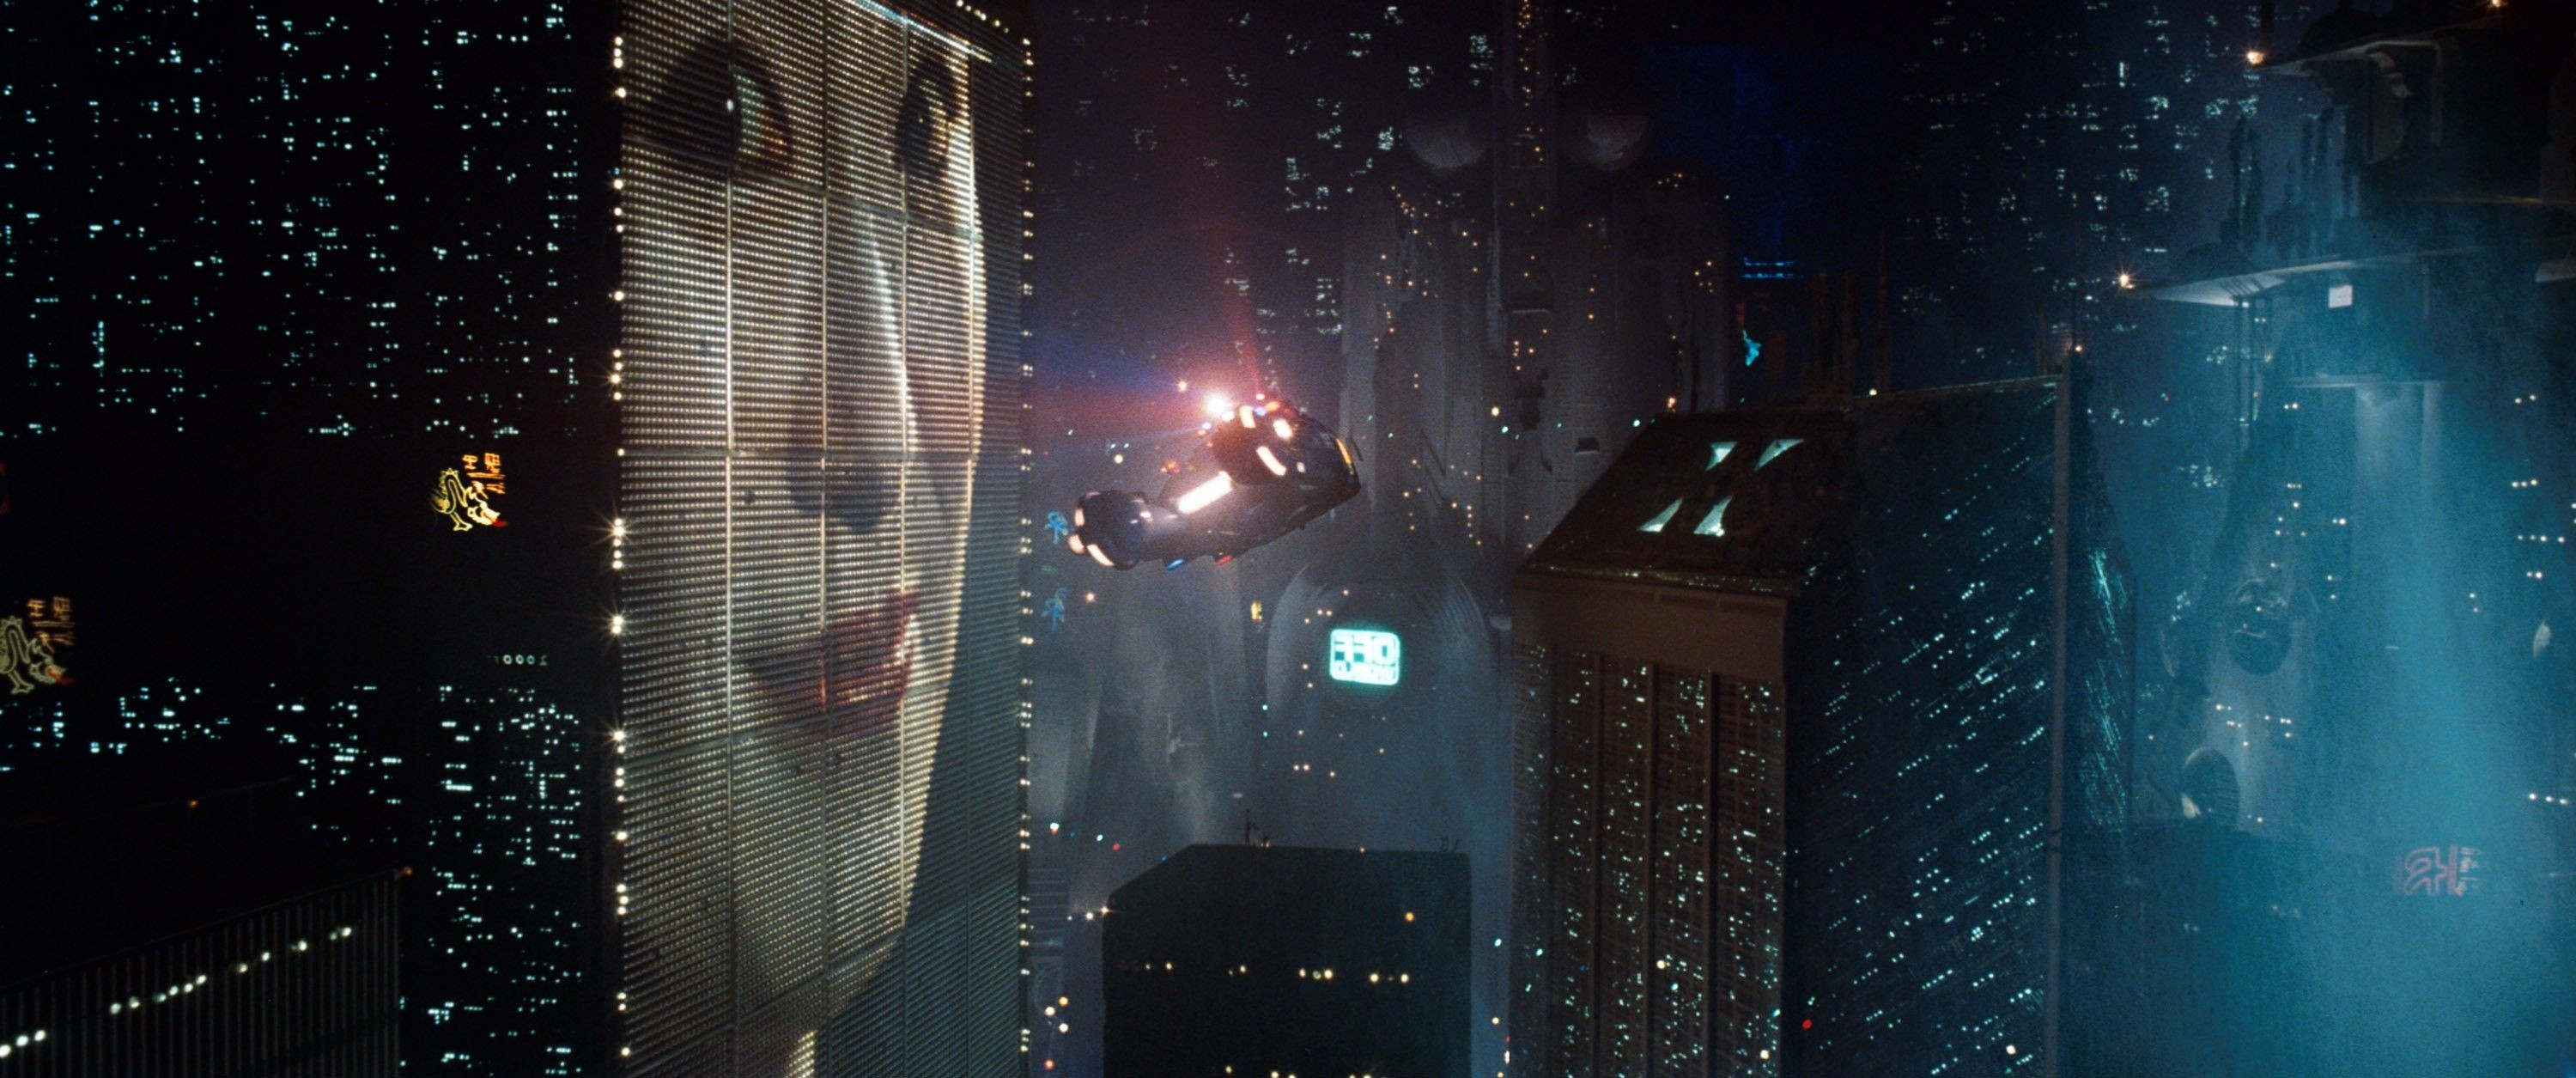 Res: 3000x1255, Blade Runner Wallpapers, 100% Quality Blade Runner HD Wallpapers